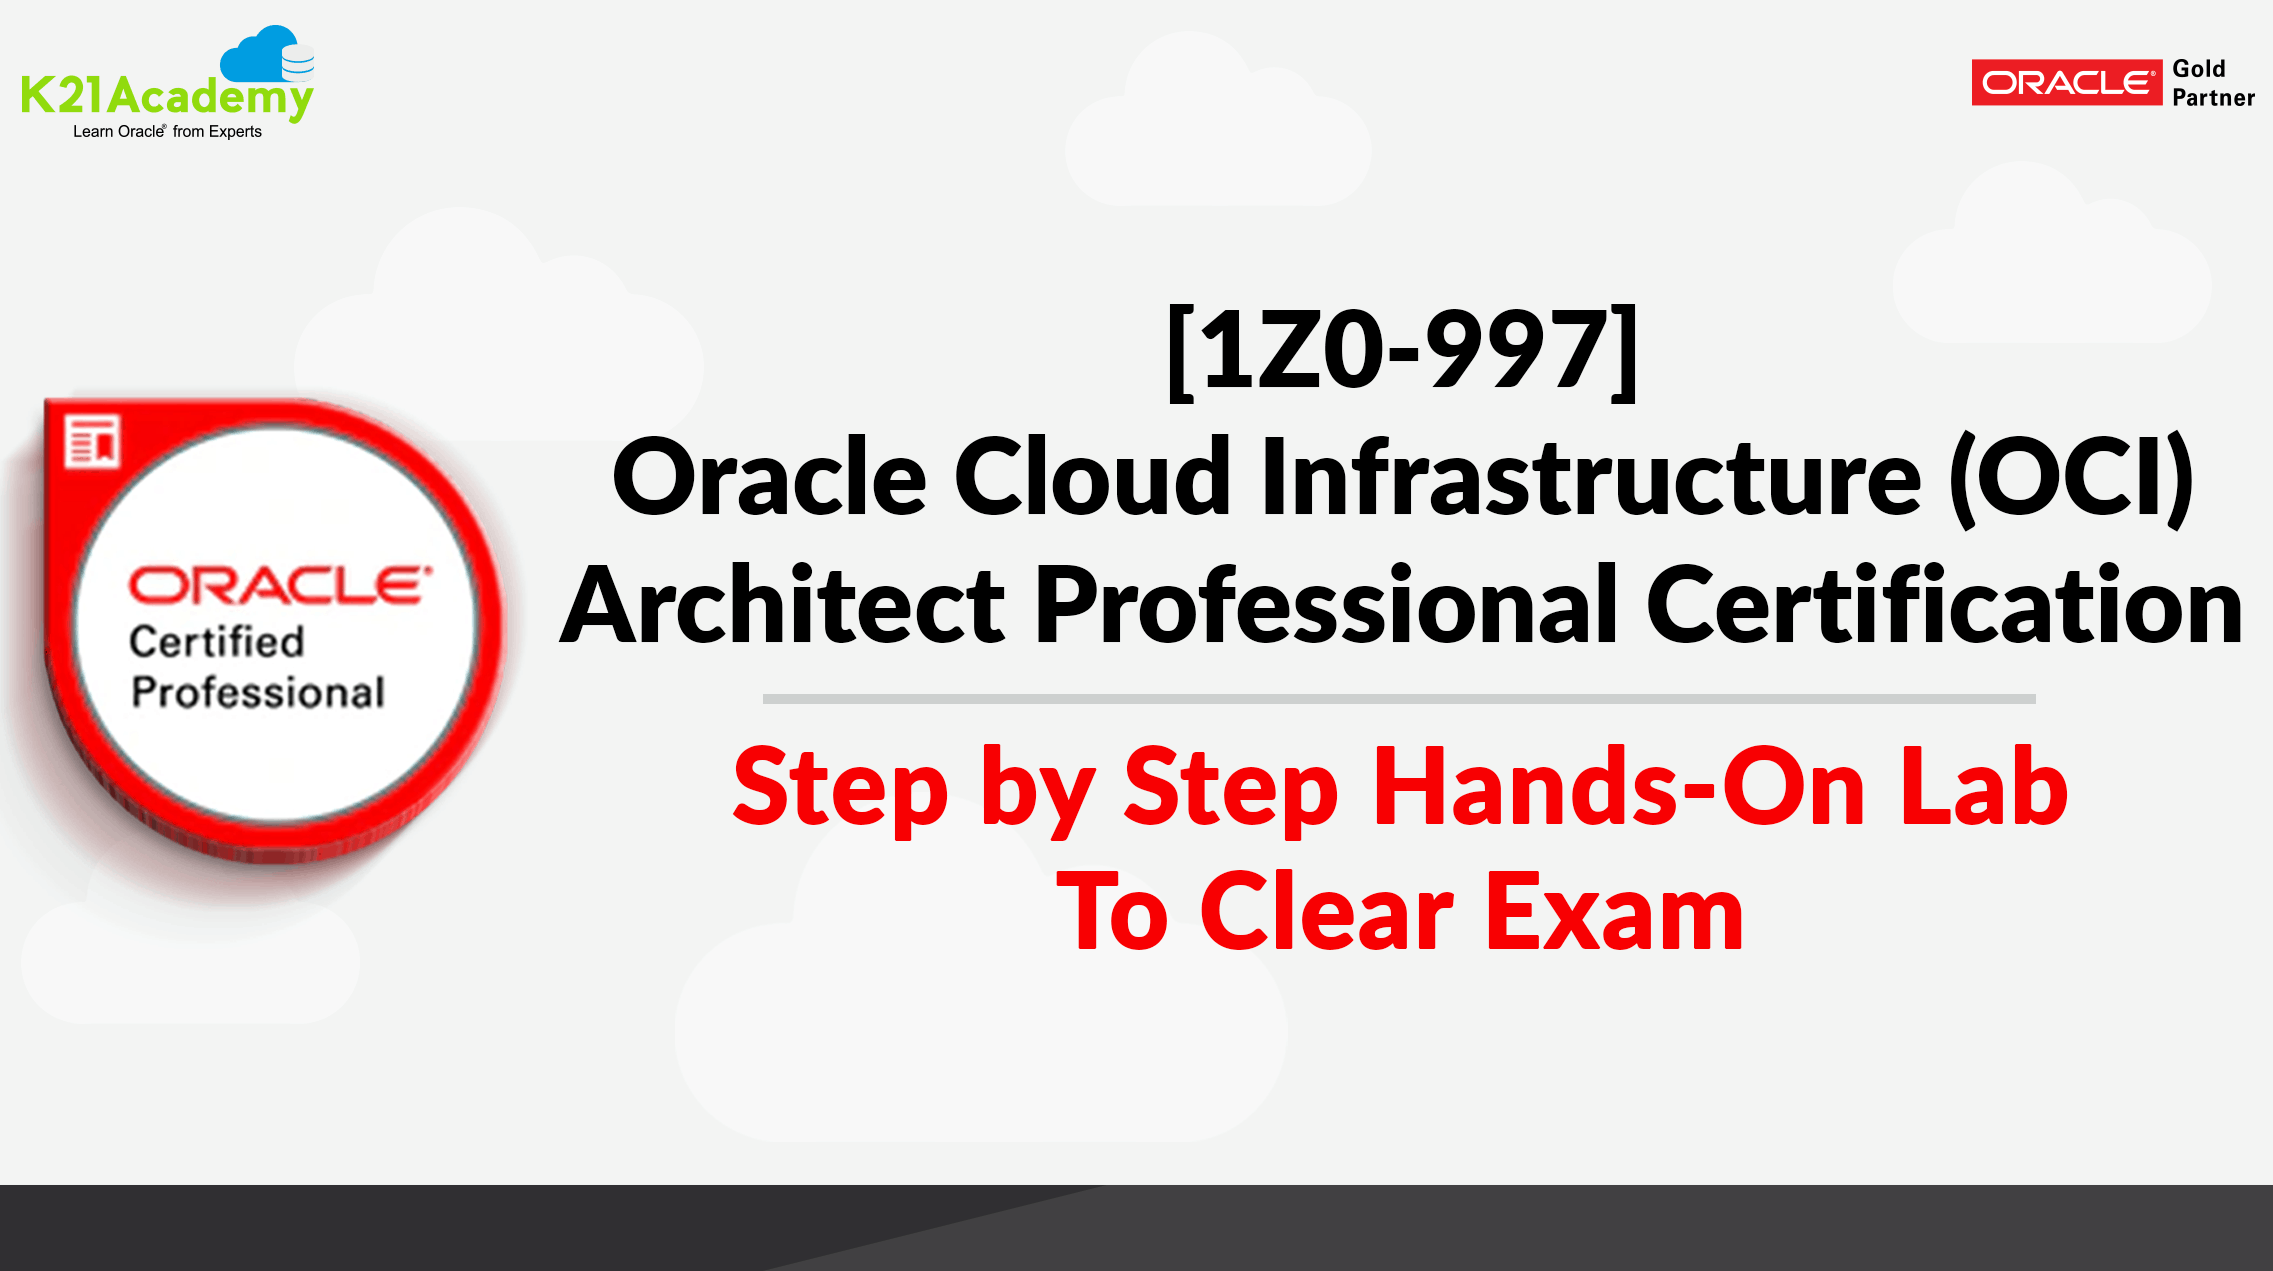 [1Z0-997]Oracle Cloud Infrastructure (OCI) Architect Professional Certification: Step by Step Hands-On Lab To Clear Exam